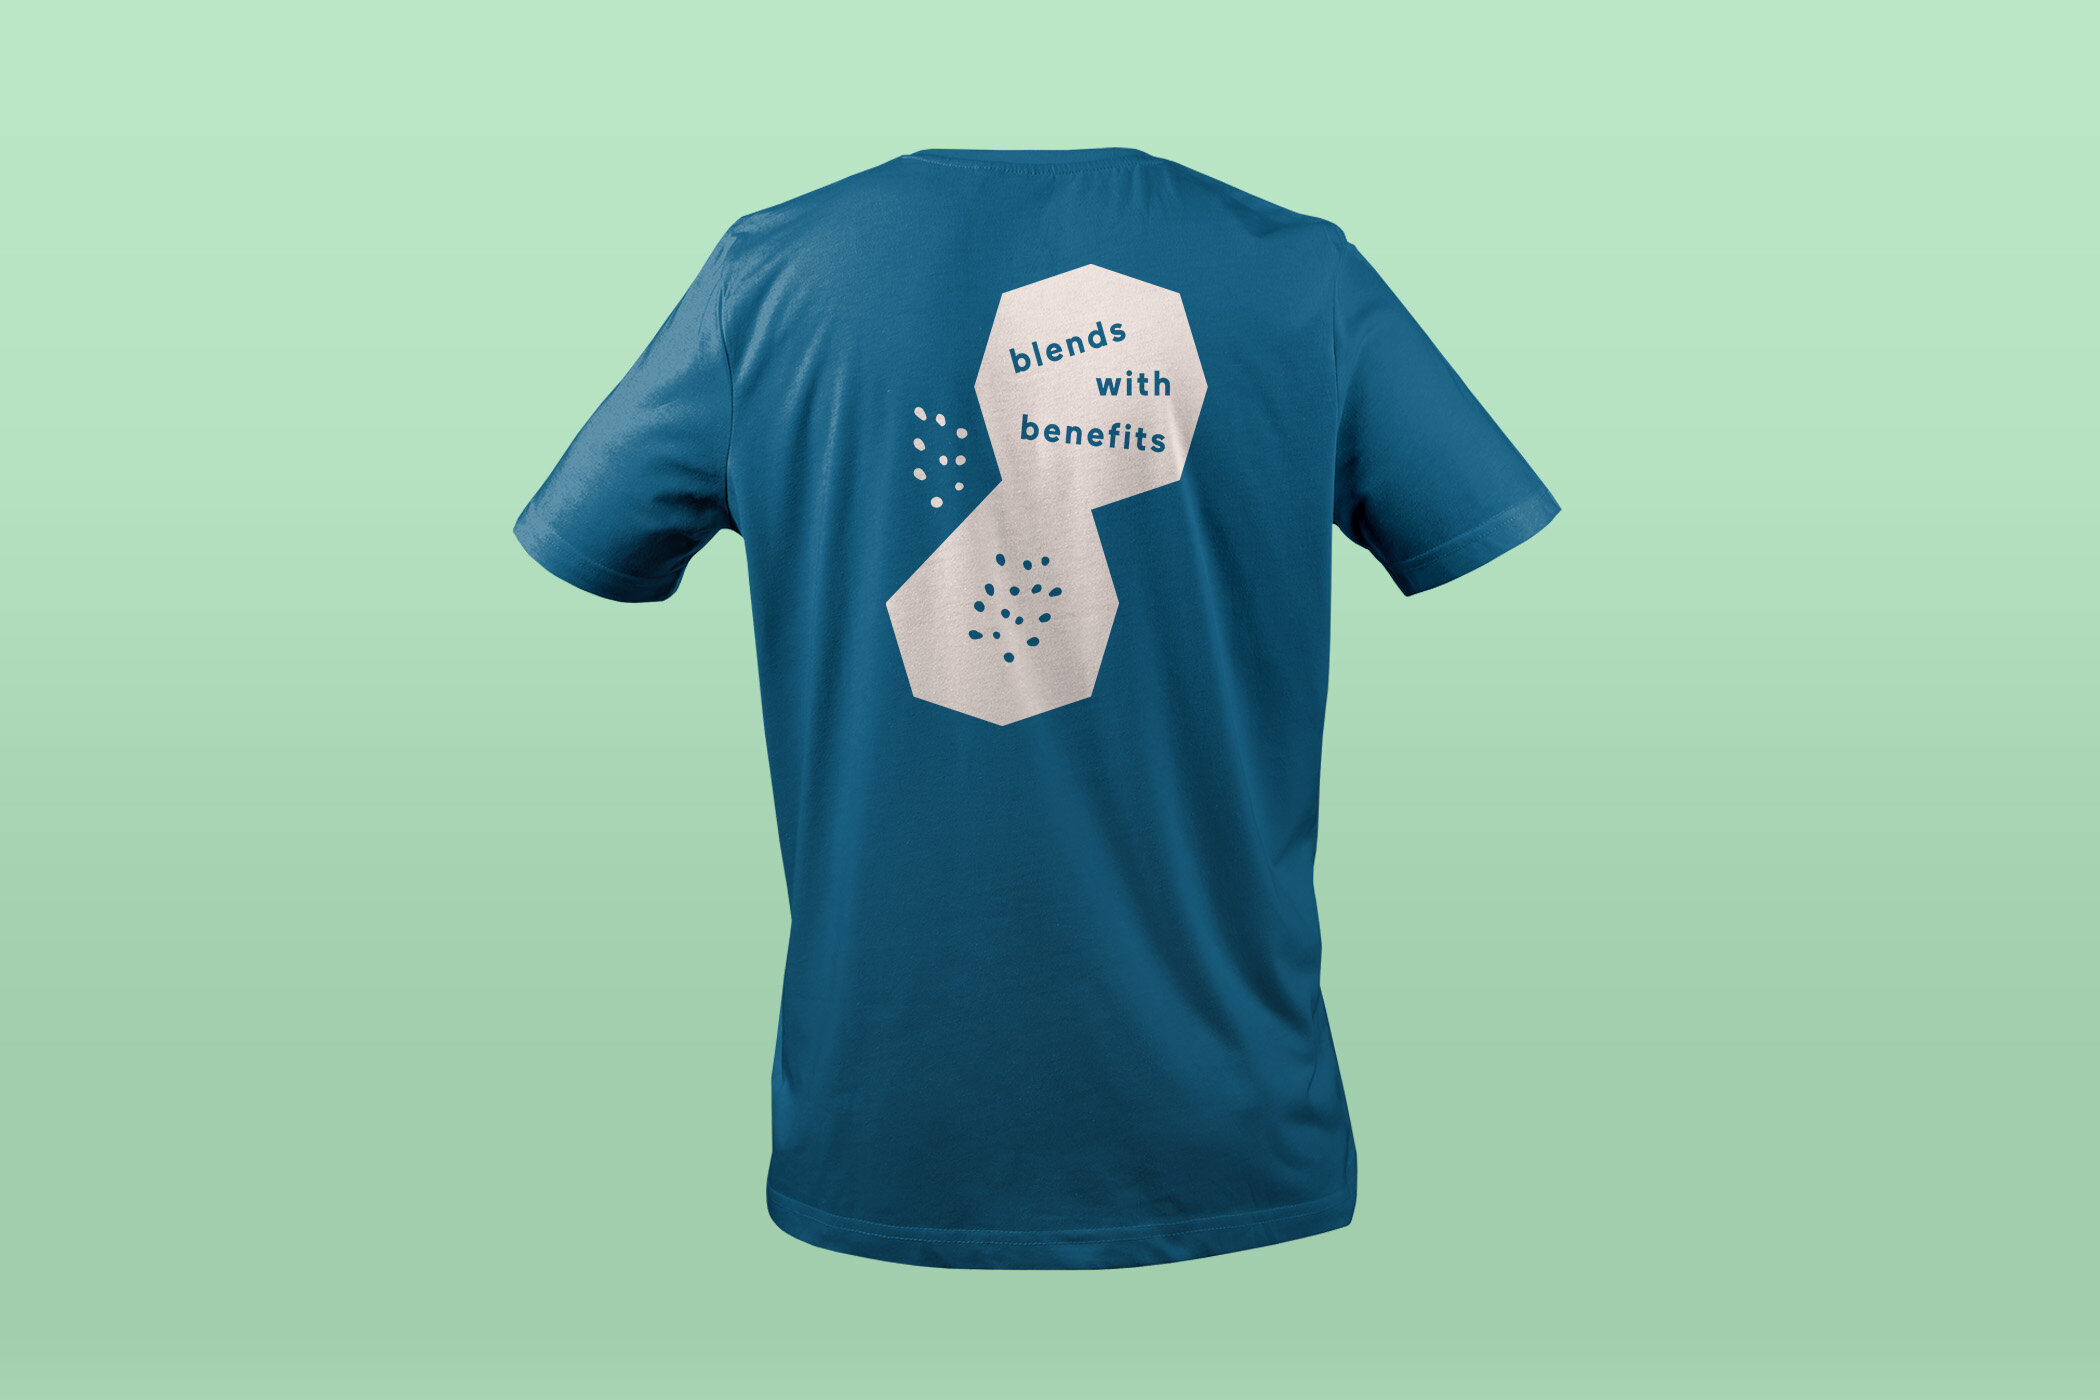 T-Shirt Mockup Template –Front and Back.jpg